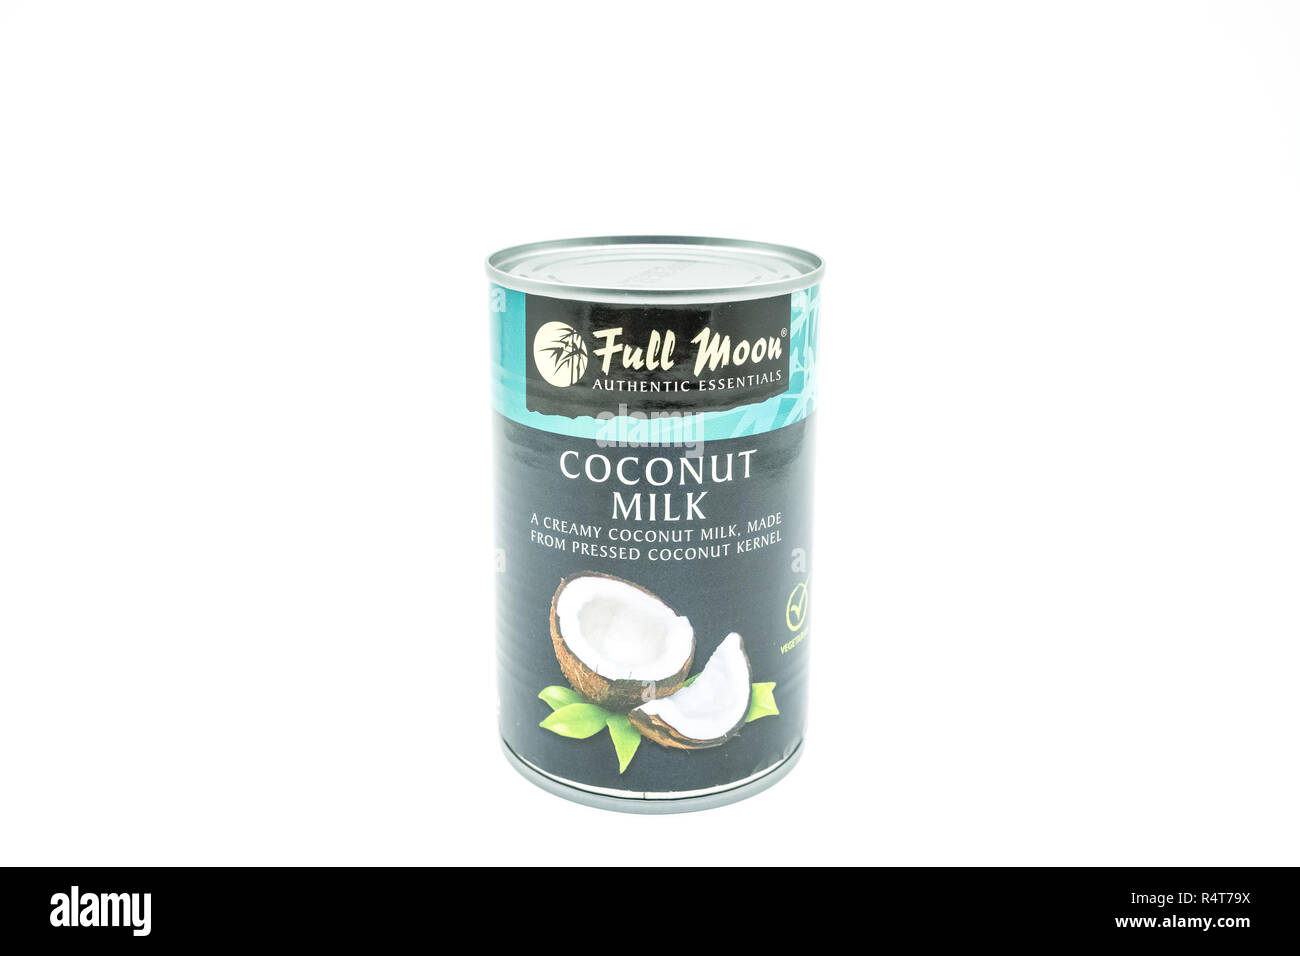 Largs, Scotland, UK - November 22, 2018: A Tin of Full Moon Branded Coconut Milk in Recyclable Tinned Container in line with current UK environmental  - Stock Image